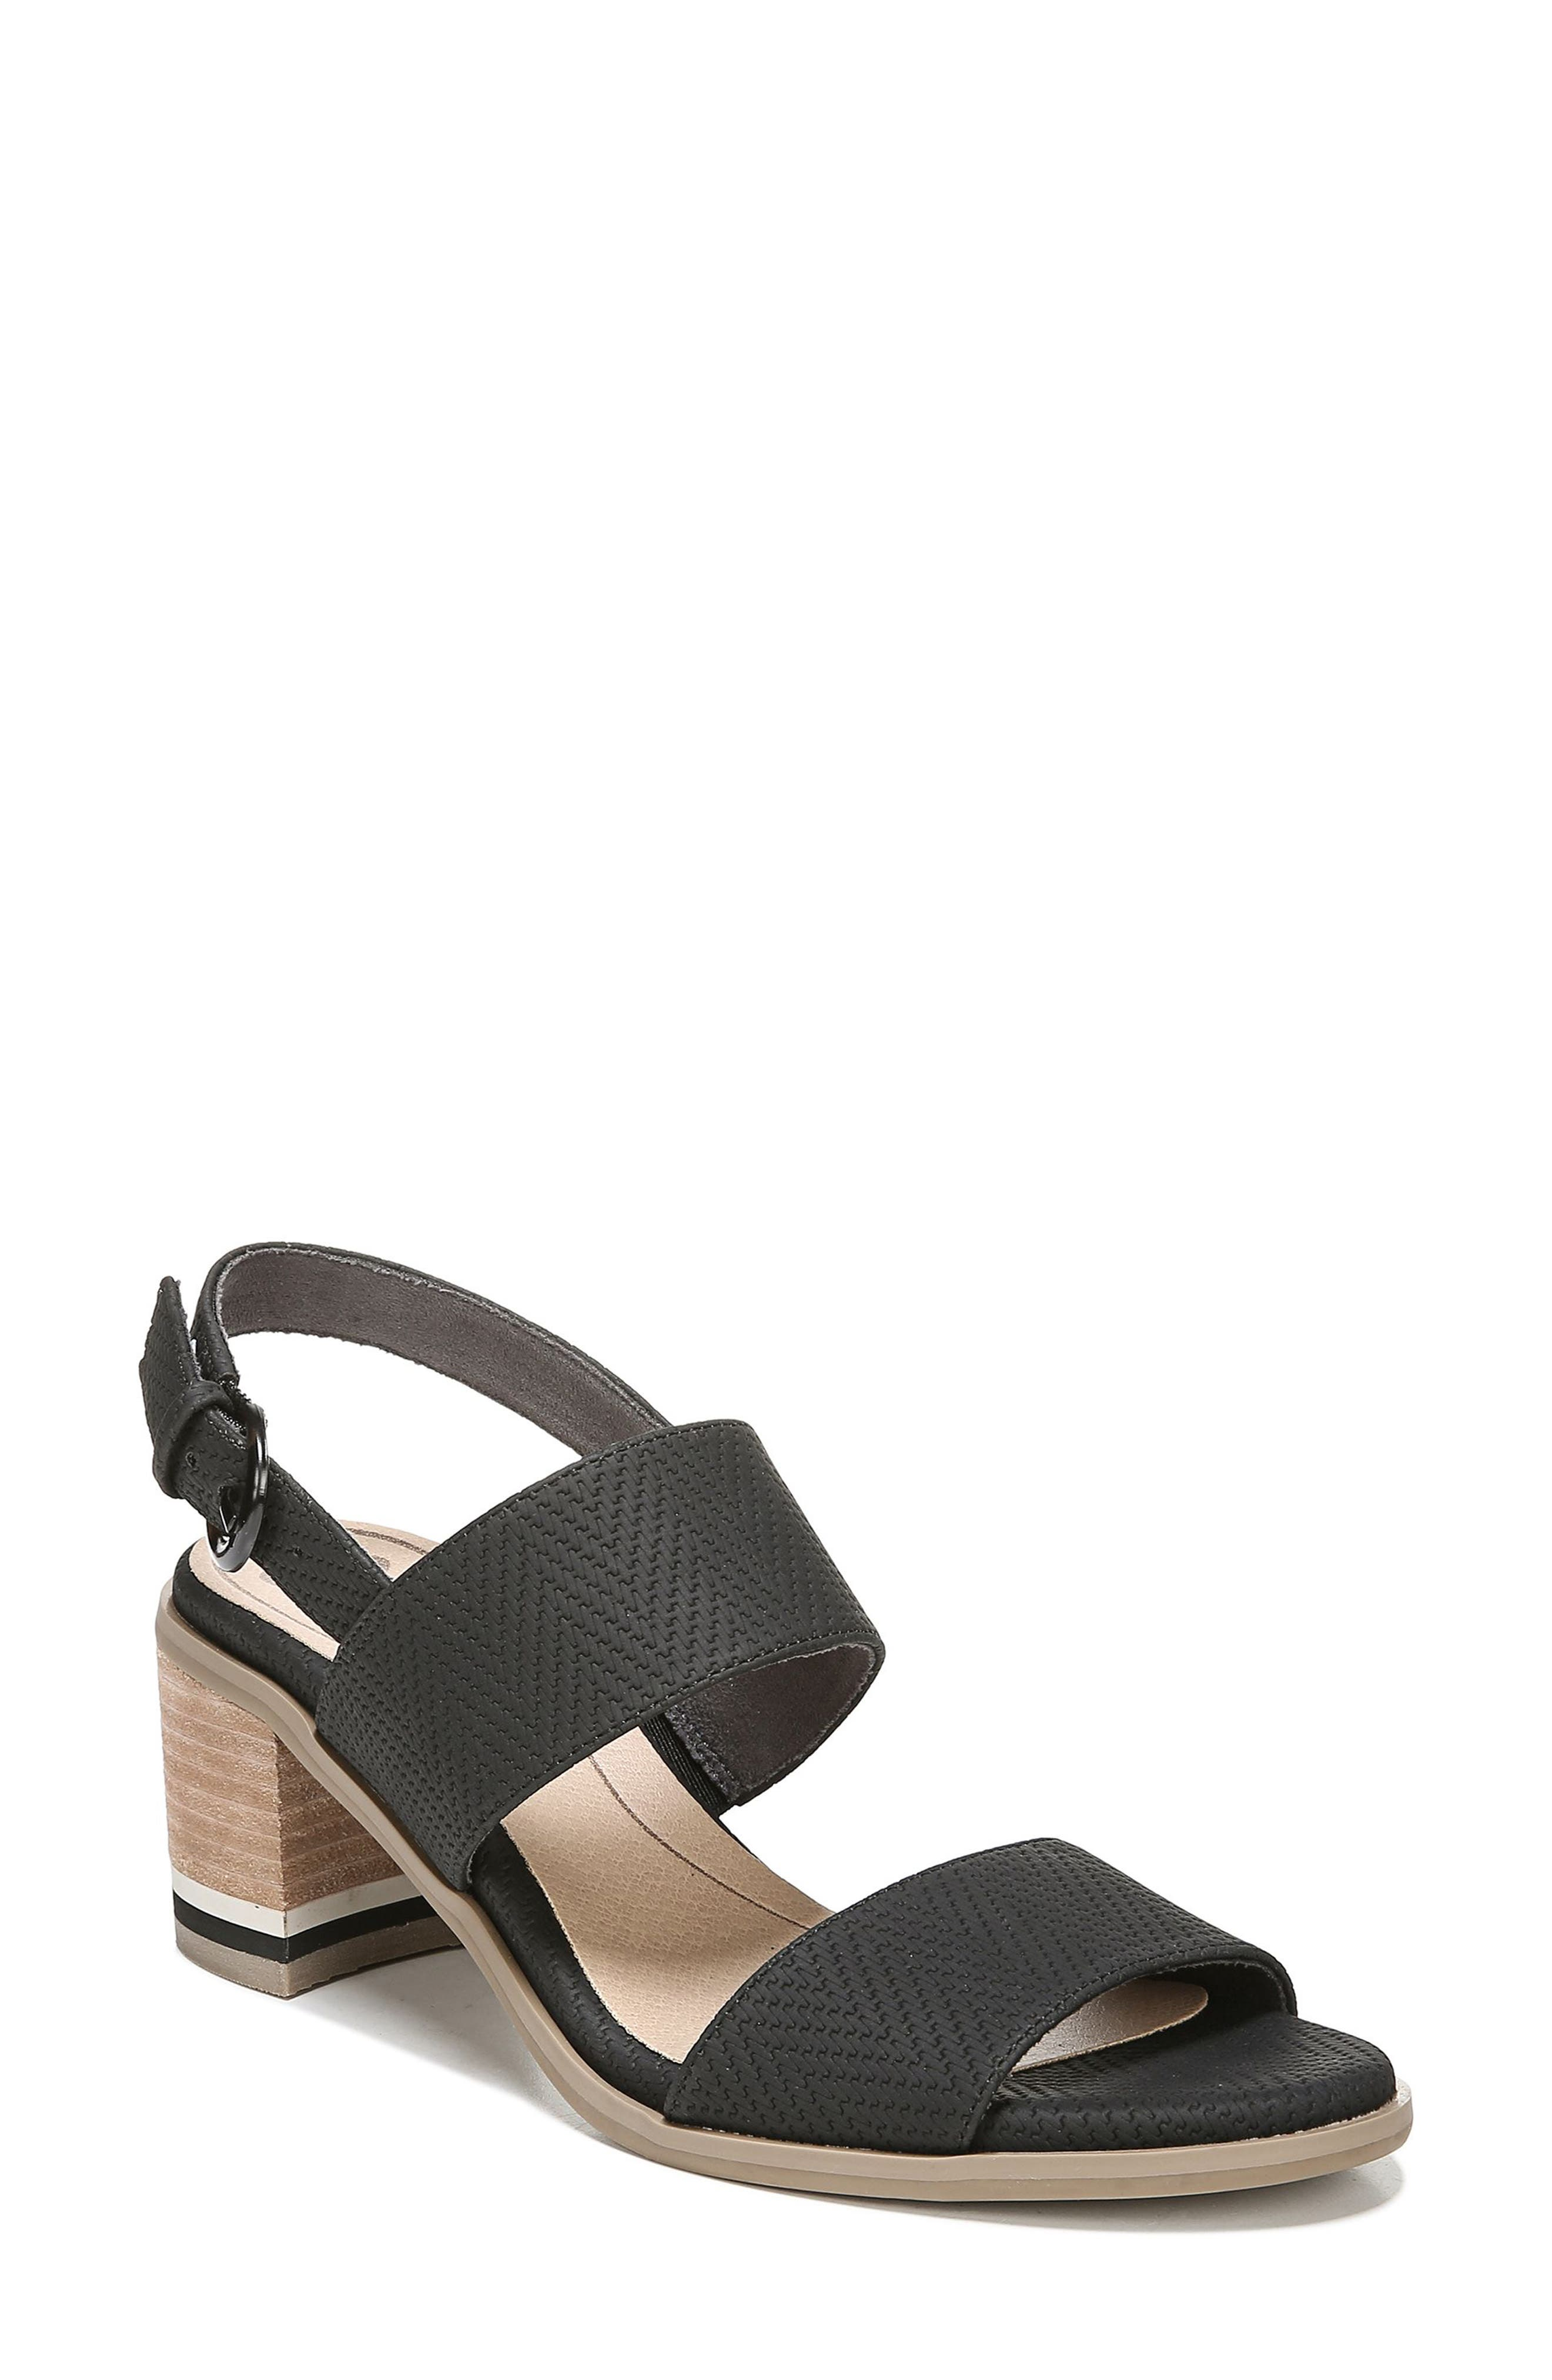 Sure Thing Sandal, Main, color, BLACK FAUX LEATHER